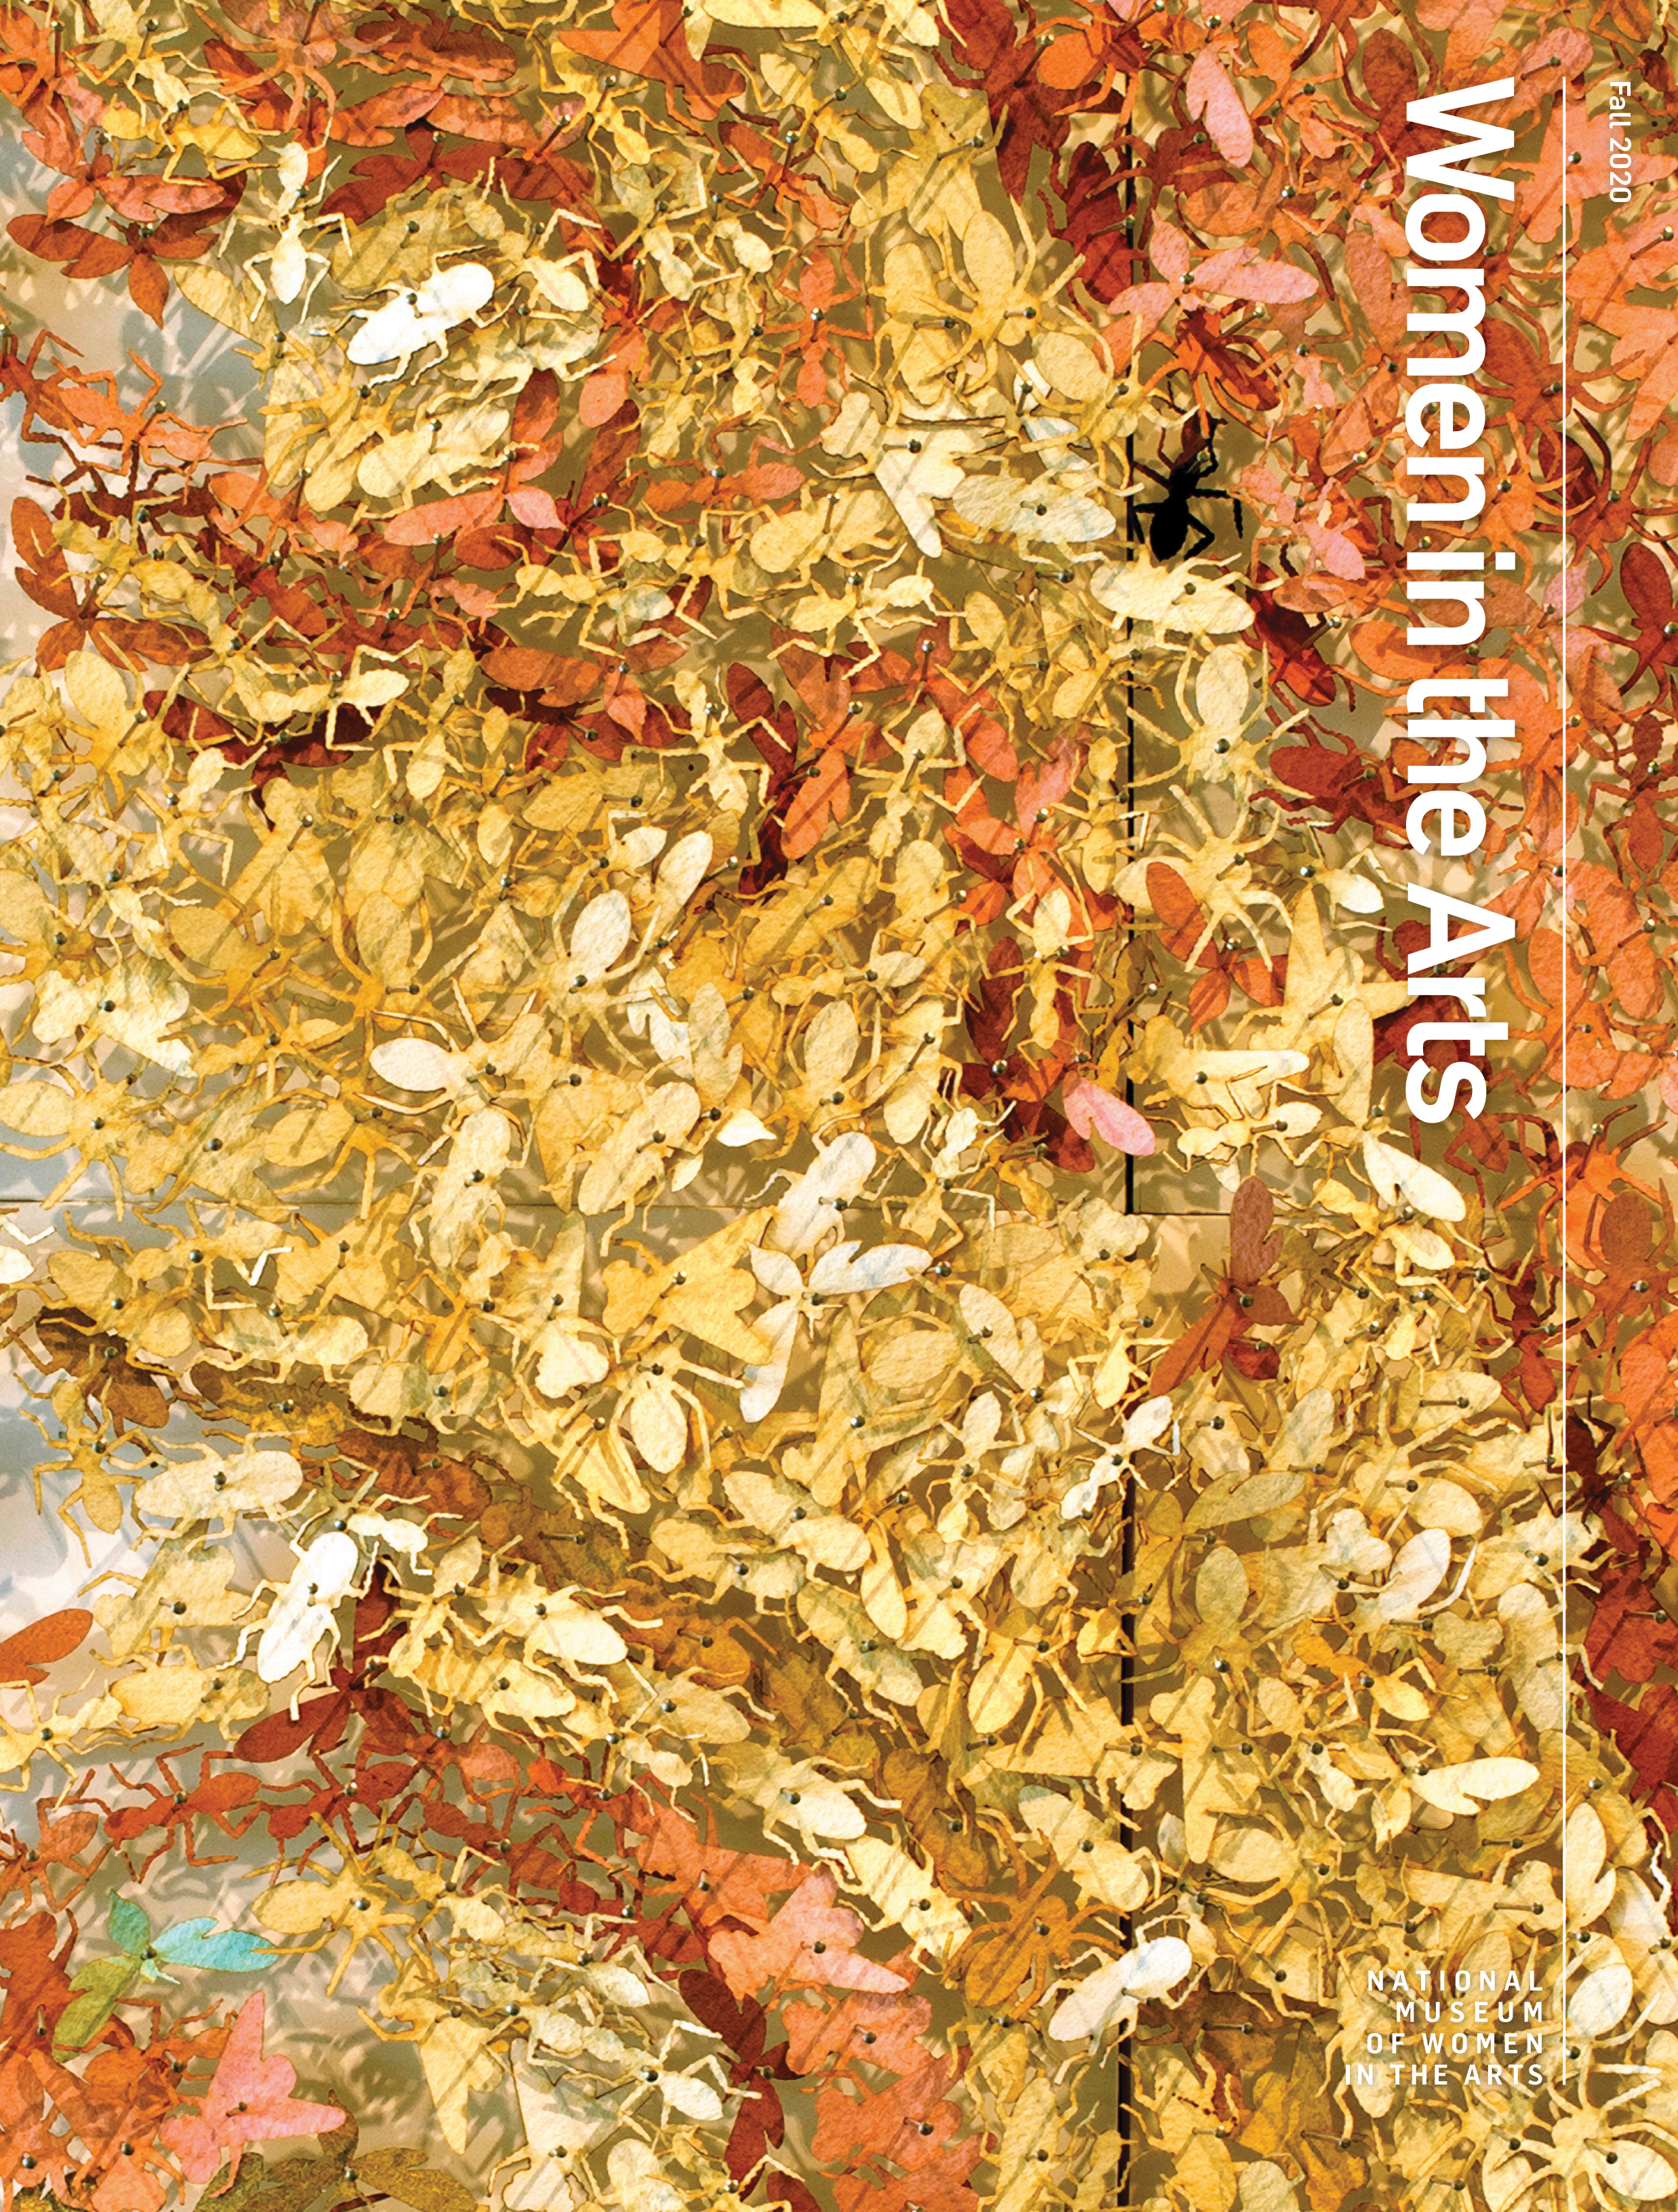 Women in the Arts magazine cover features a close-up look at an artwork made of cut paper insects in metallic hues of gold and copper.